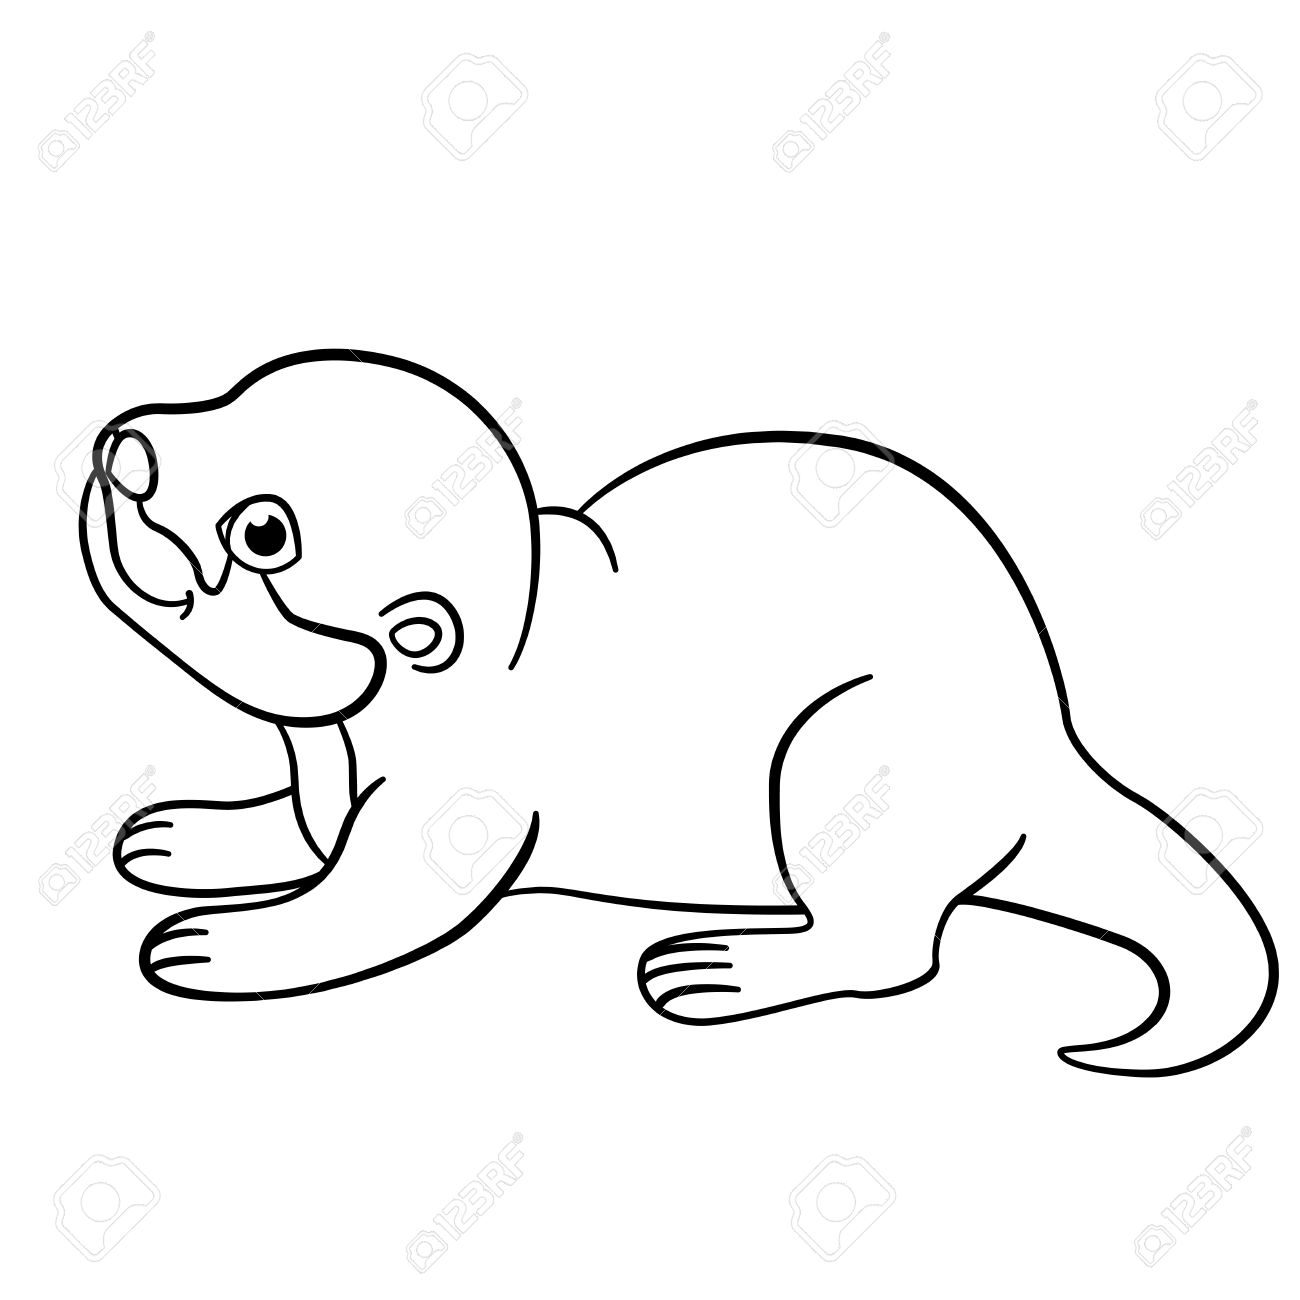 1300x1300 Coloring Pages. Little Cute Baby Otter Stands And Smiles. Royalty